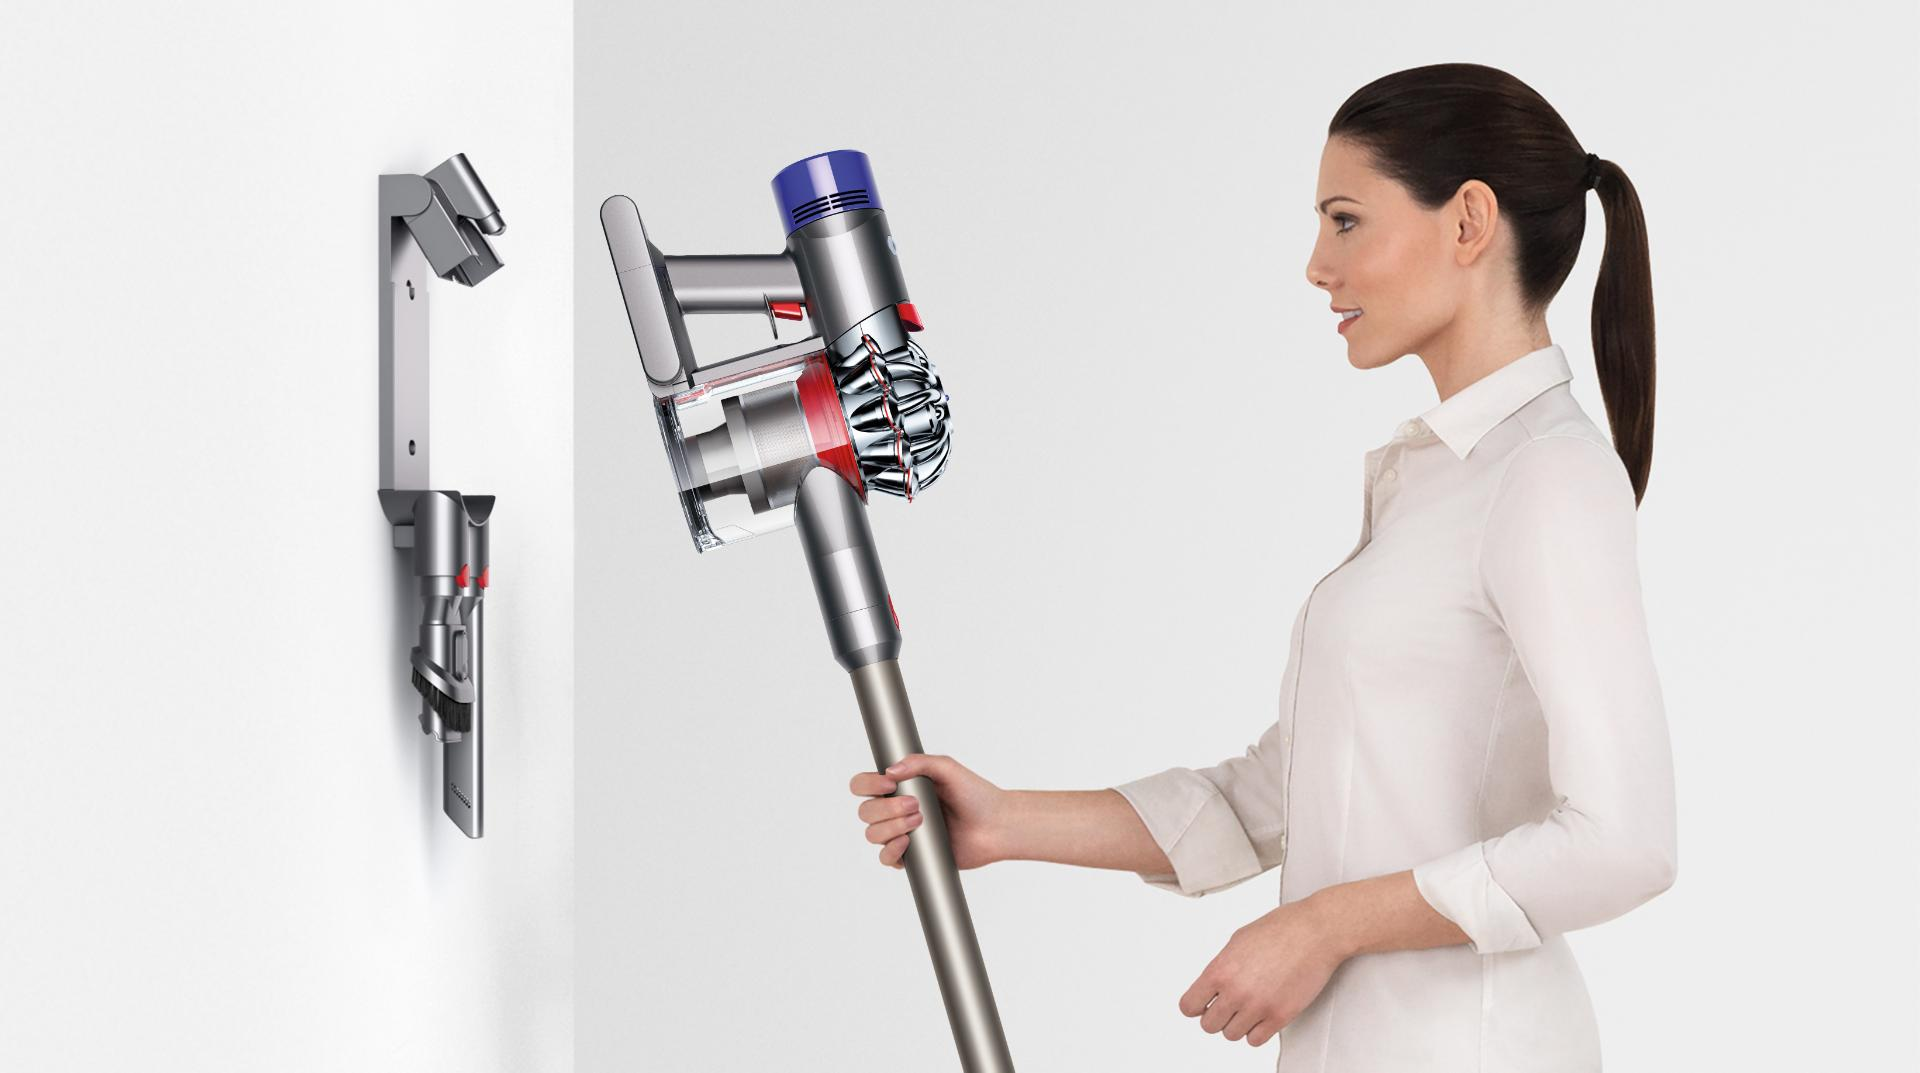 The wall mounted charging dock recharges your Dyson V8™ vacuum. So it's ready whenever you need it, and easy to store as soon as you've finished.